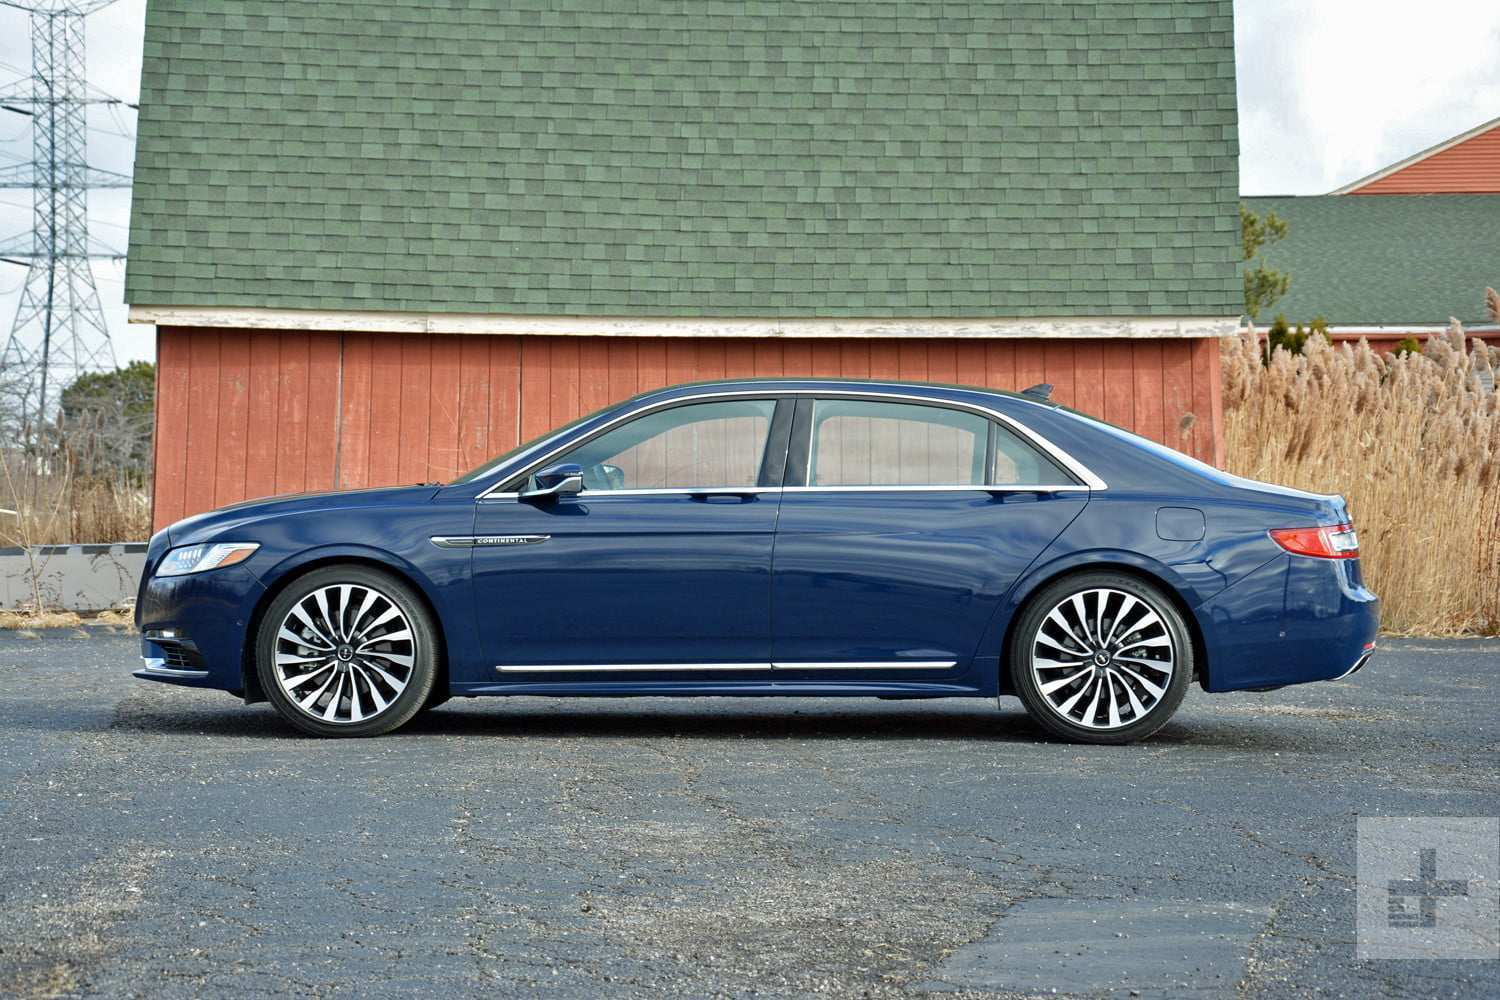 92 A 2019 The Lincoln Continental Price